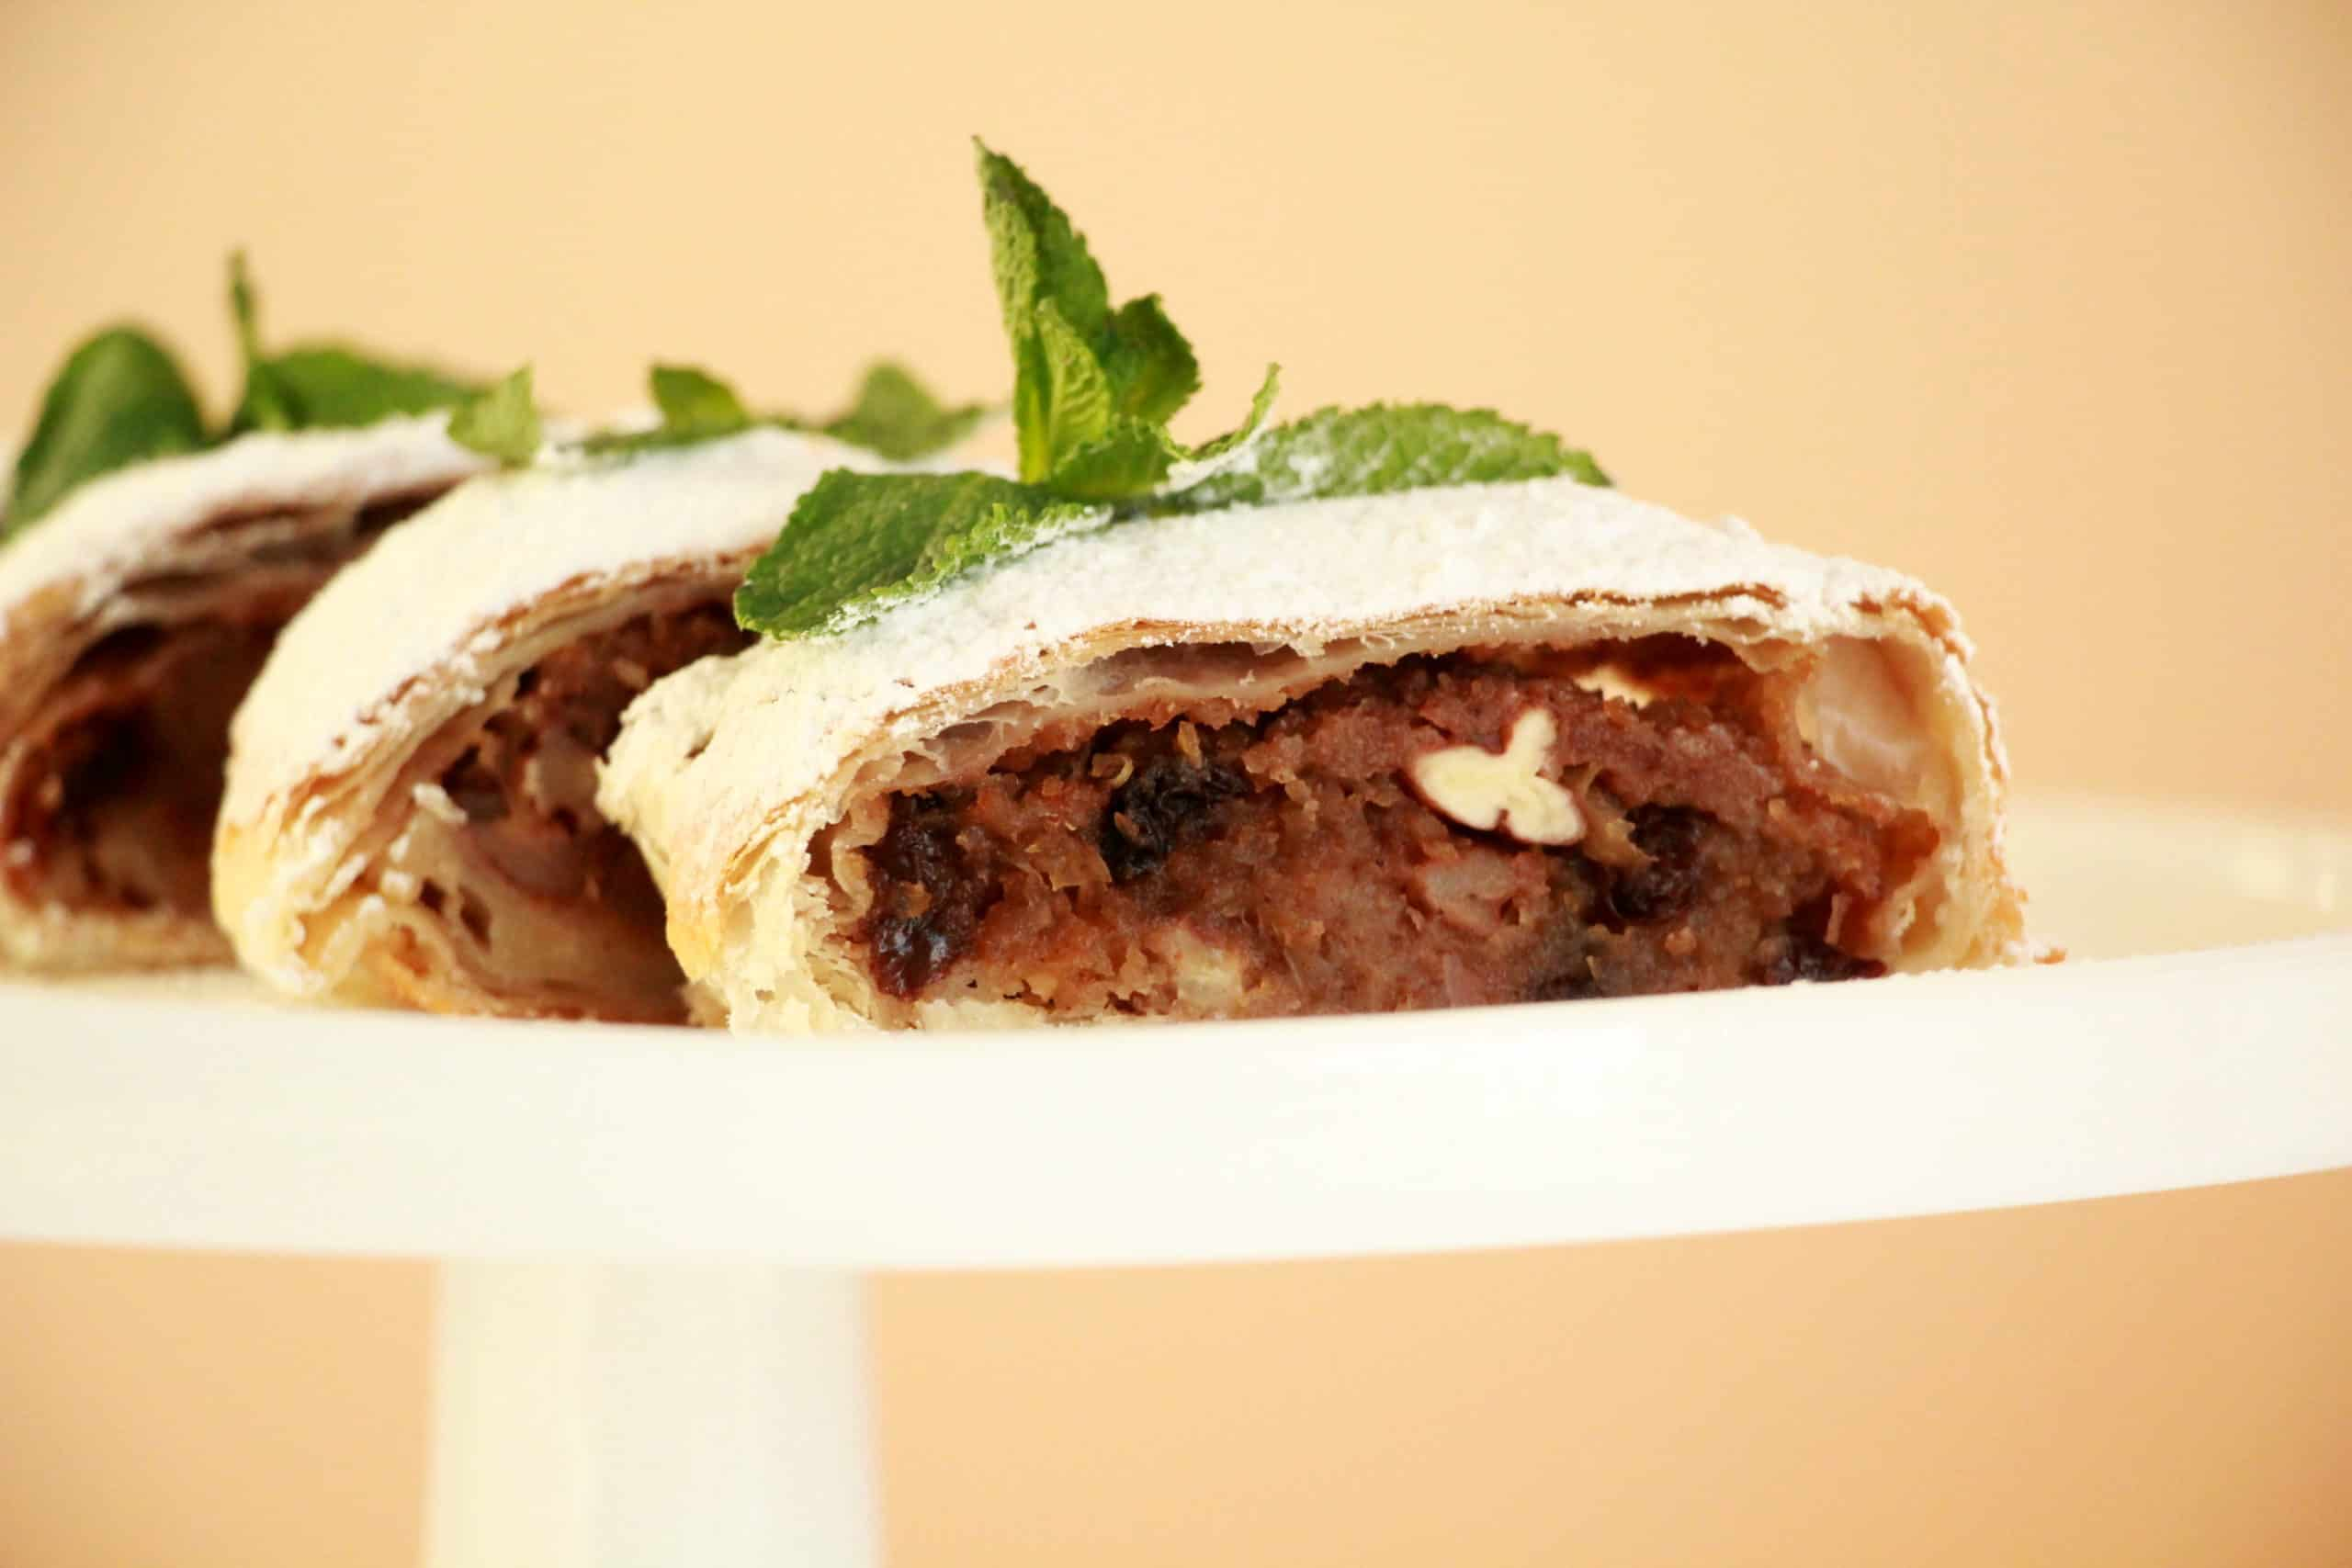 apple strudel made from puff pastry